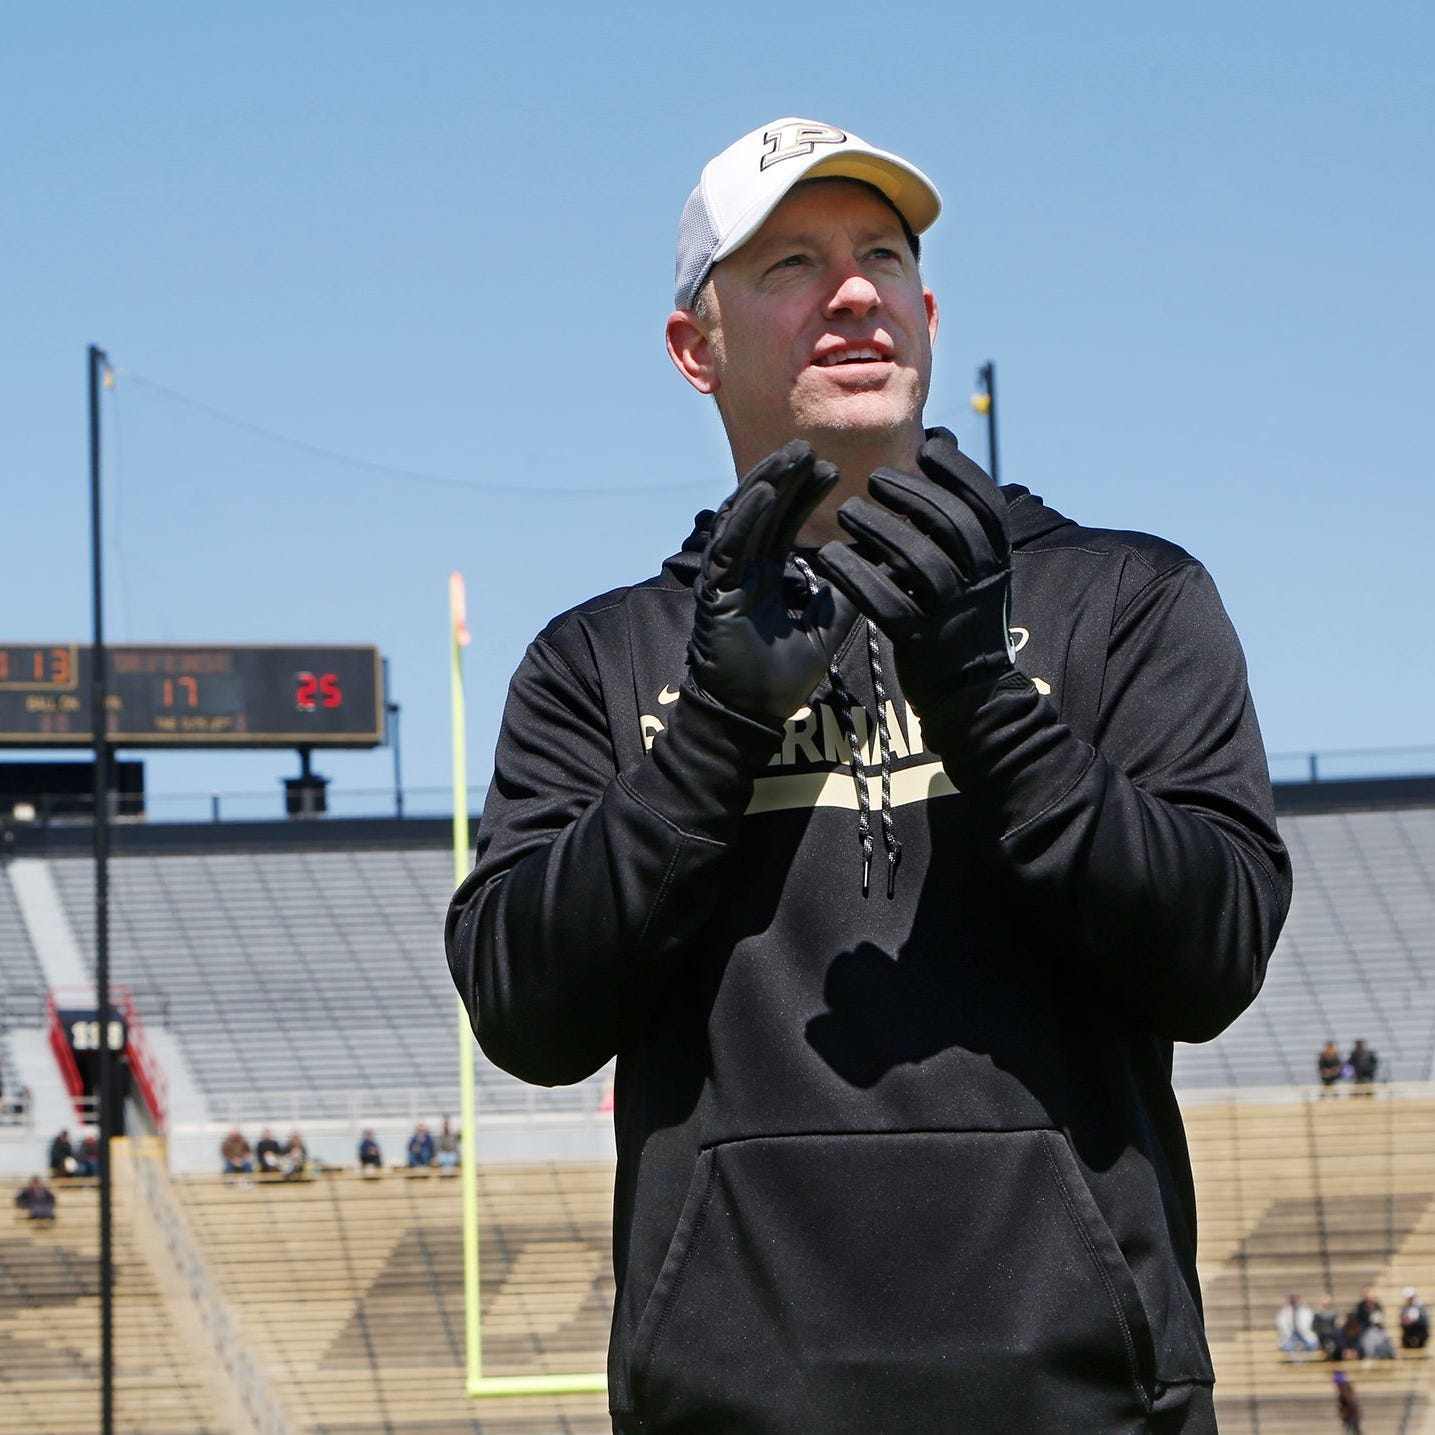 Purdue football 2018 season predictions: What does Jeff Brohm do for an encore?